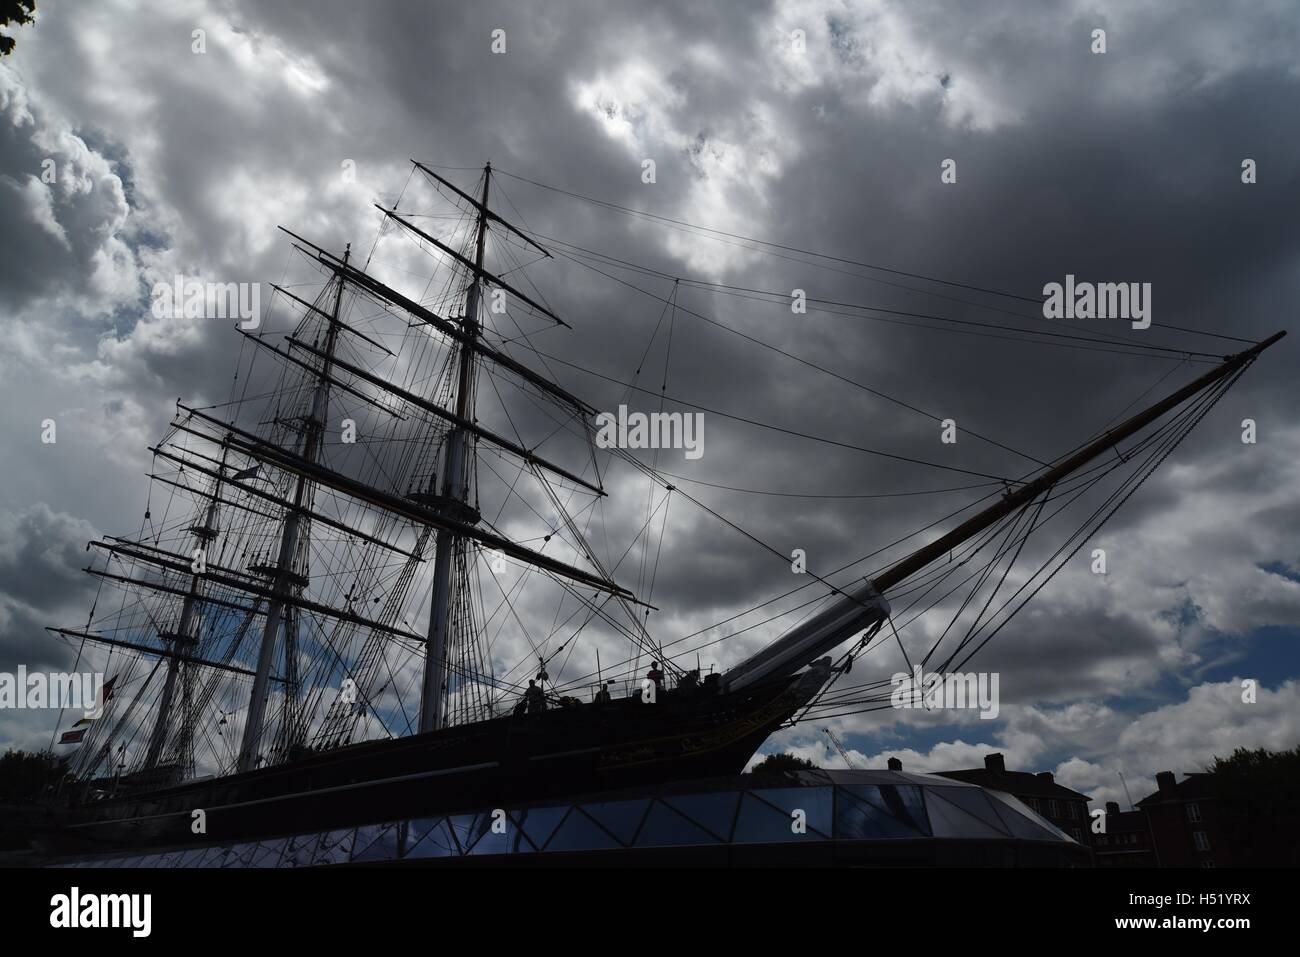 Cutty Sark in a stormy sky - Stock Image